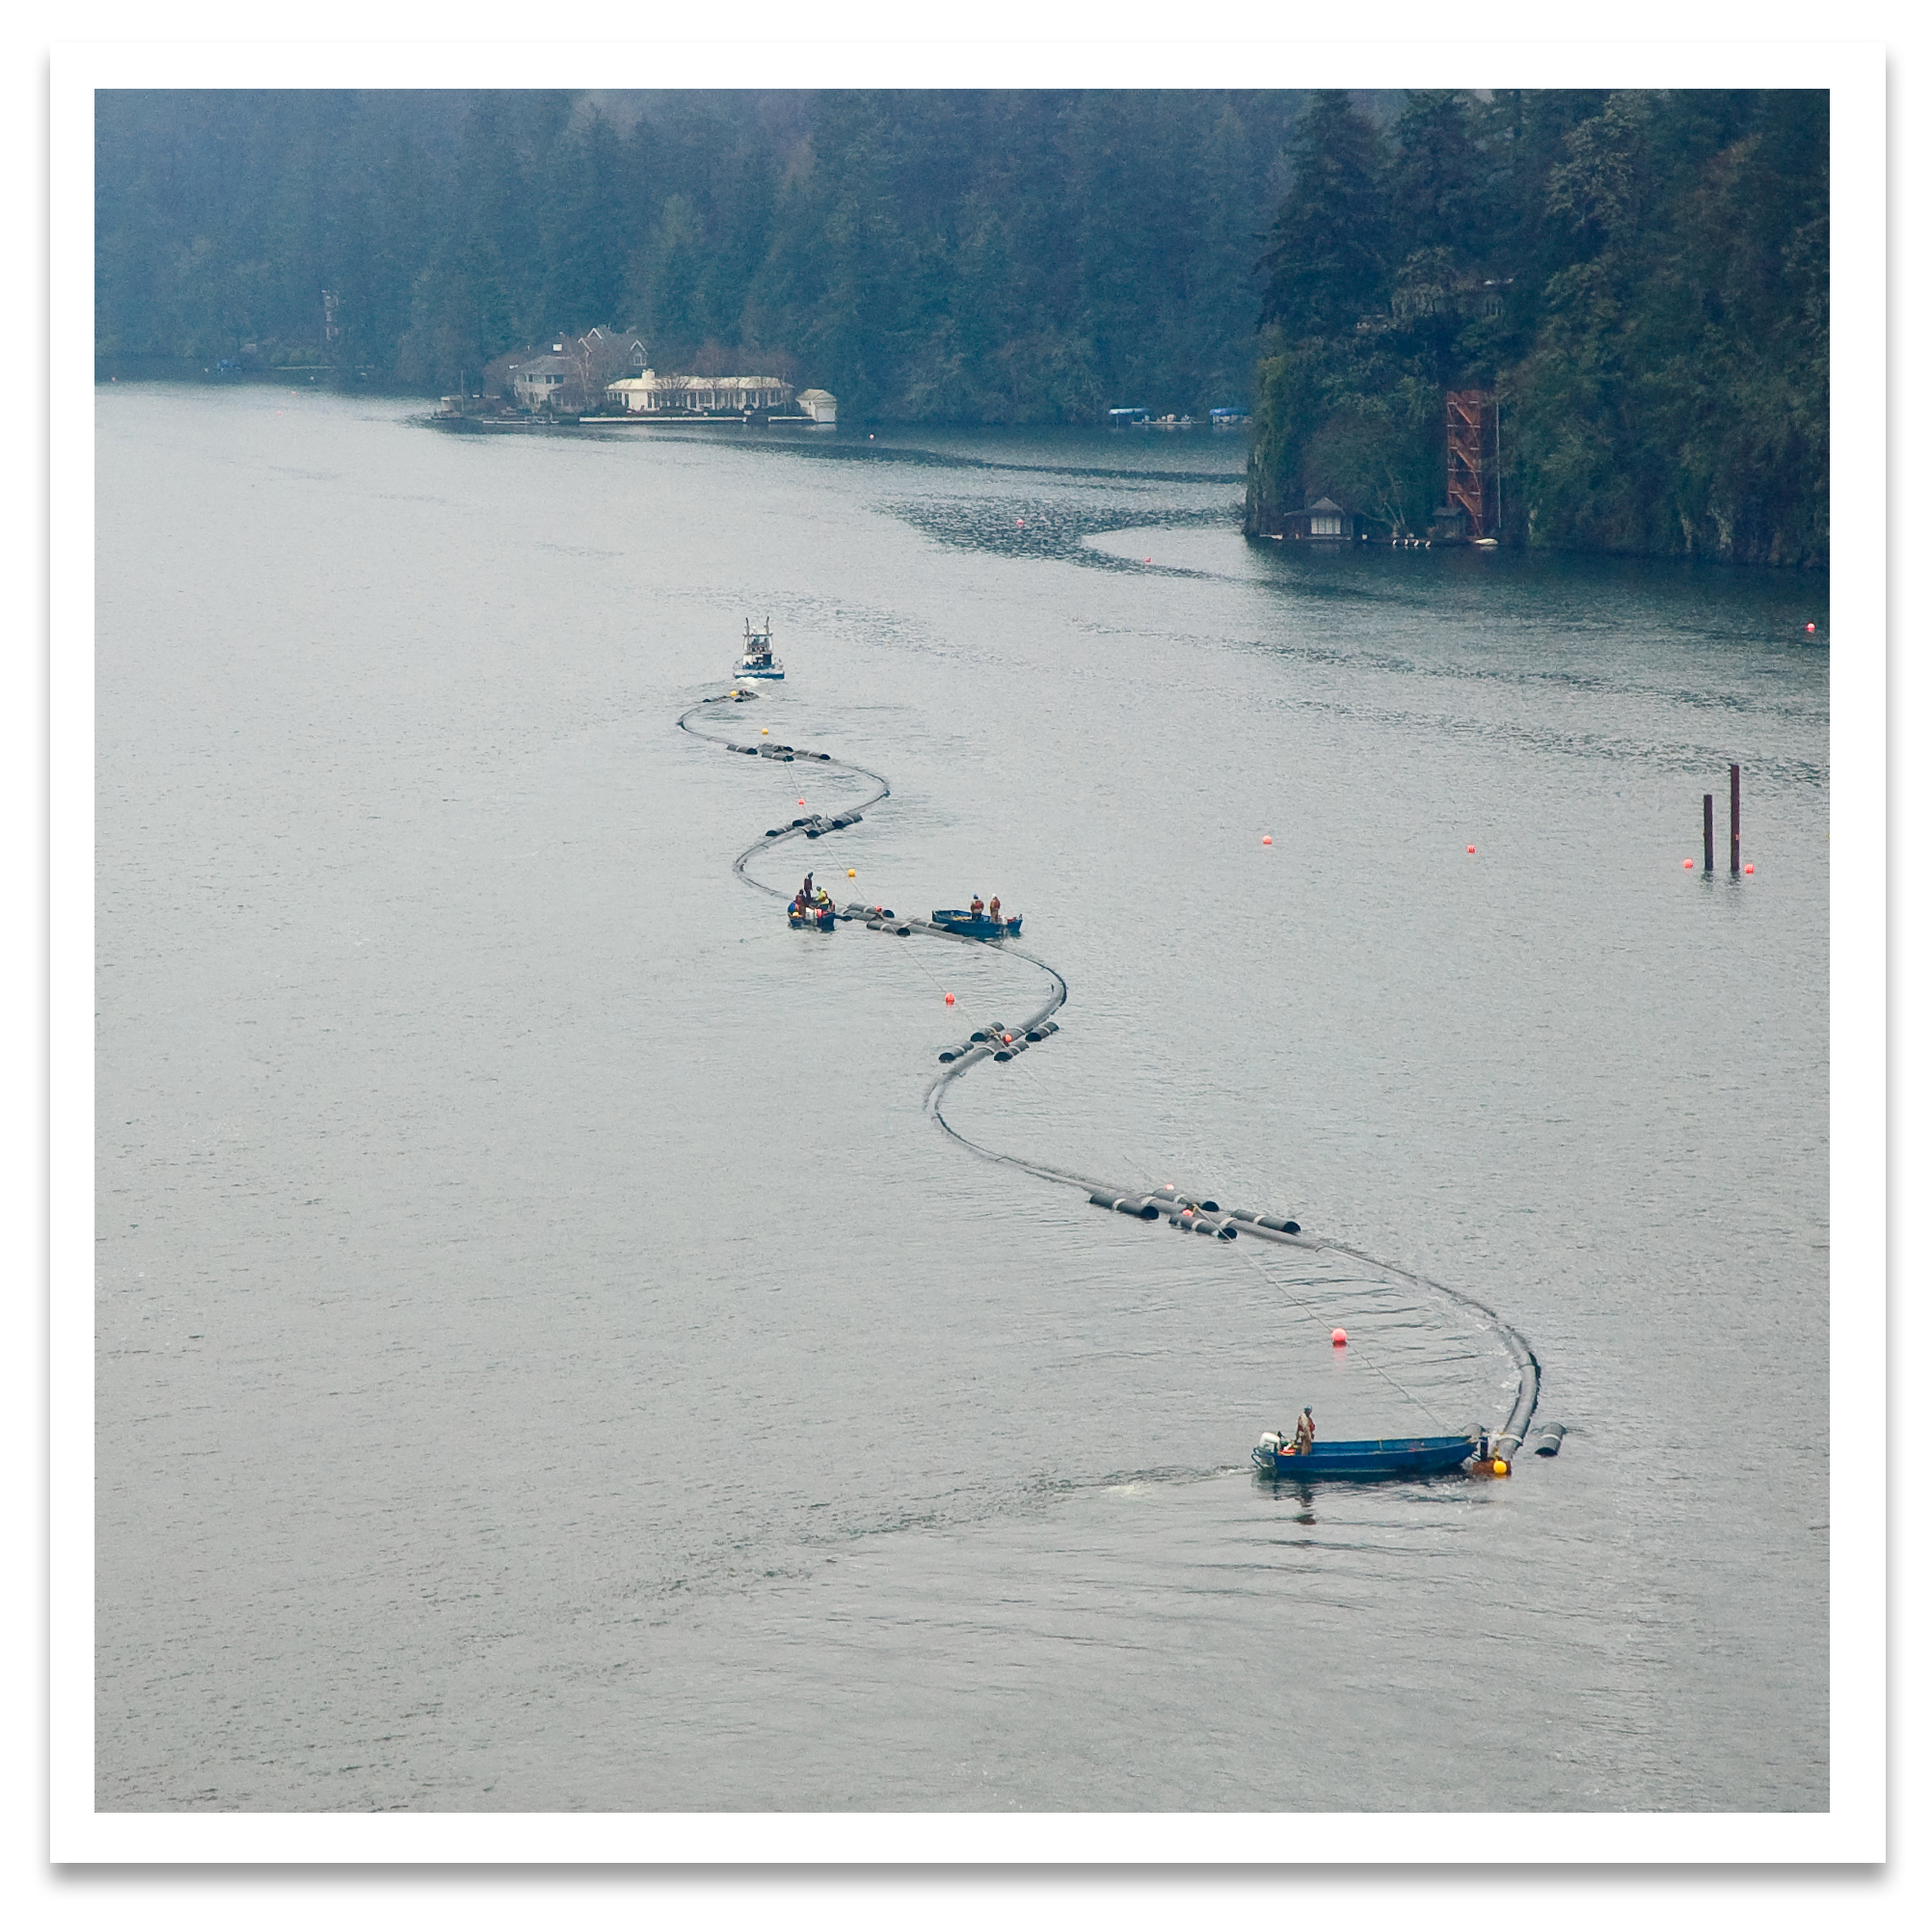 Lake Oswego First to Use HDPE for Submerged Gravity Flow Pipeline